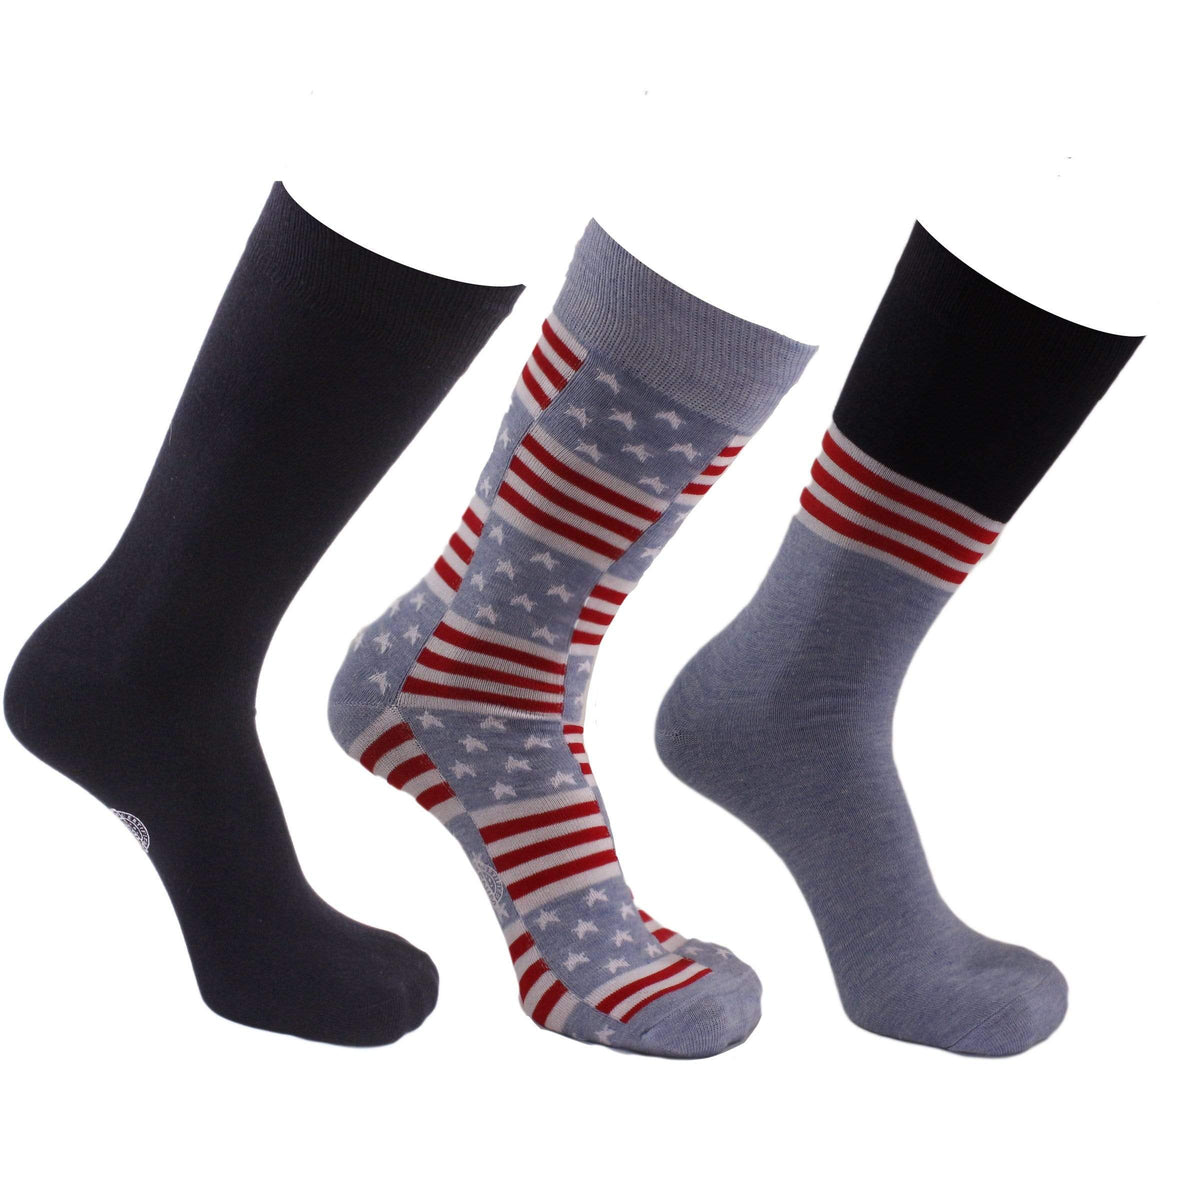 Stars & Stripes 3 Pack Crew Socks